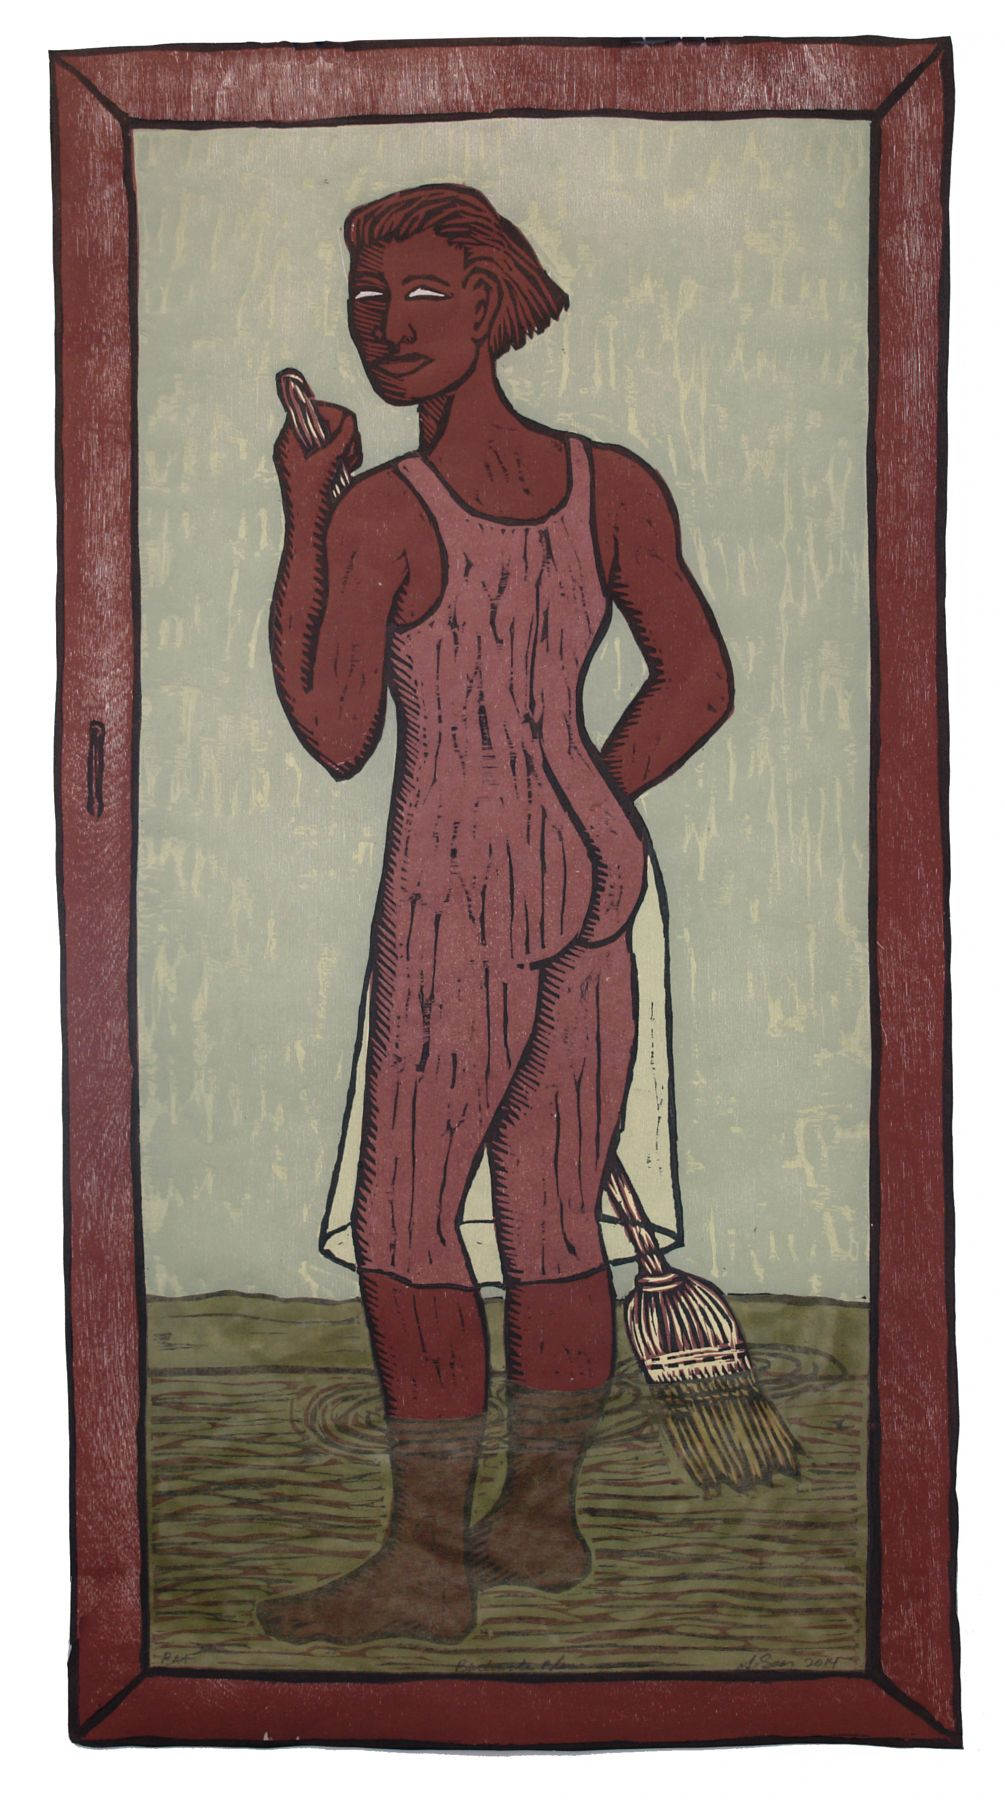 Alison Saar, Backwater Blues, 2014, woodcut, chine collé, 27 3/8 x 14 3/8 inches, Edition 25/30